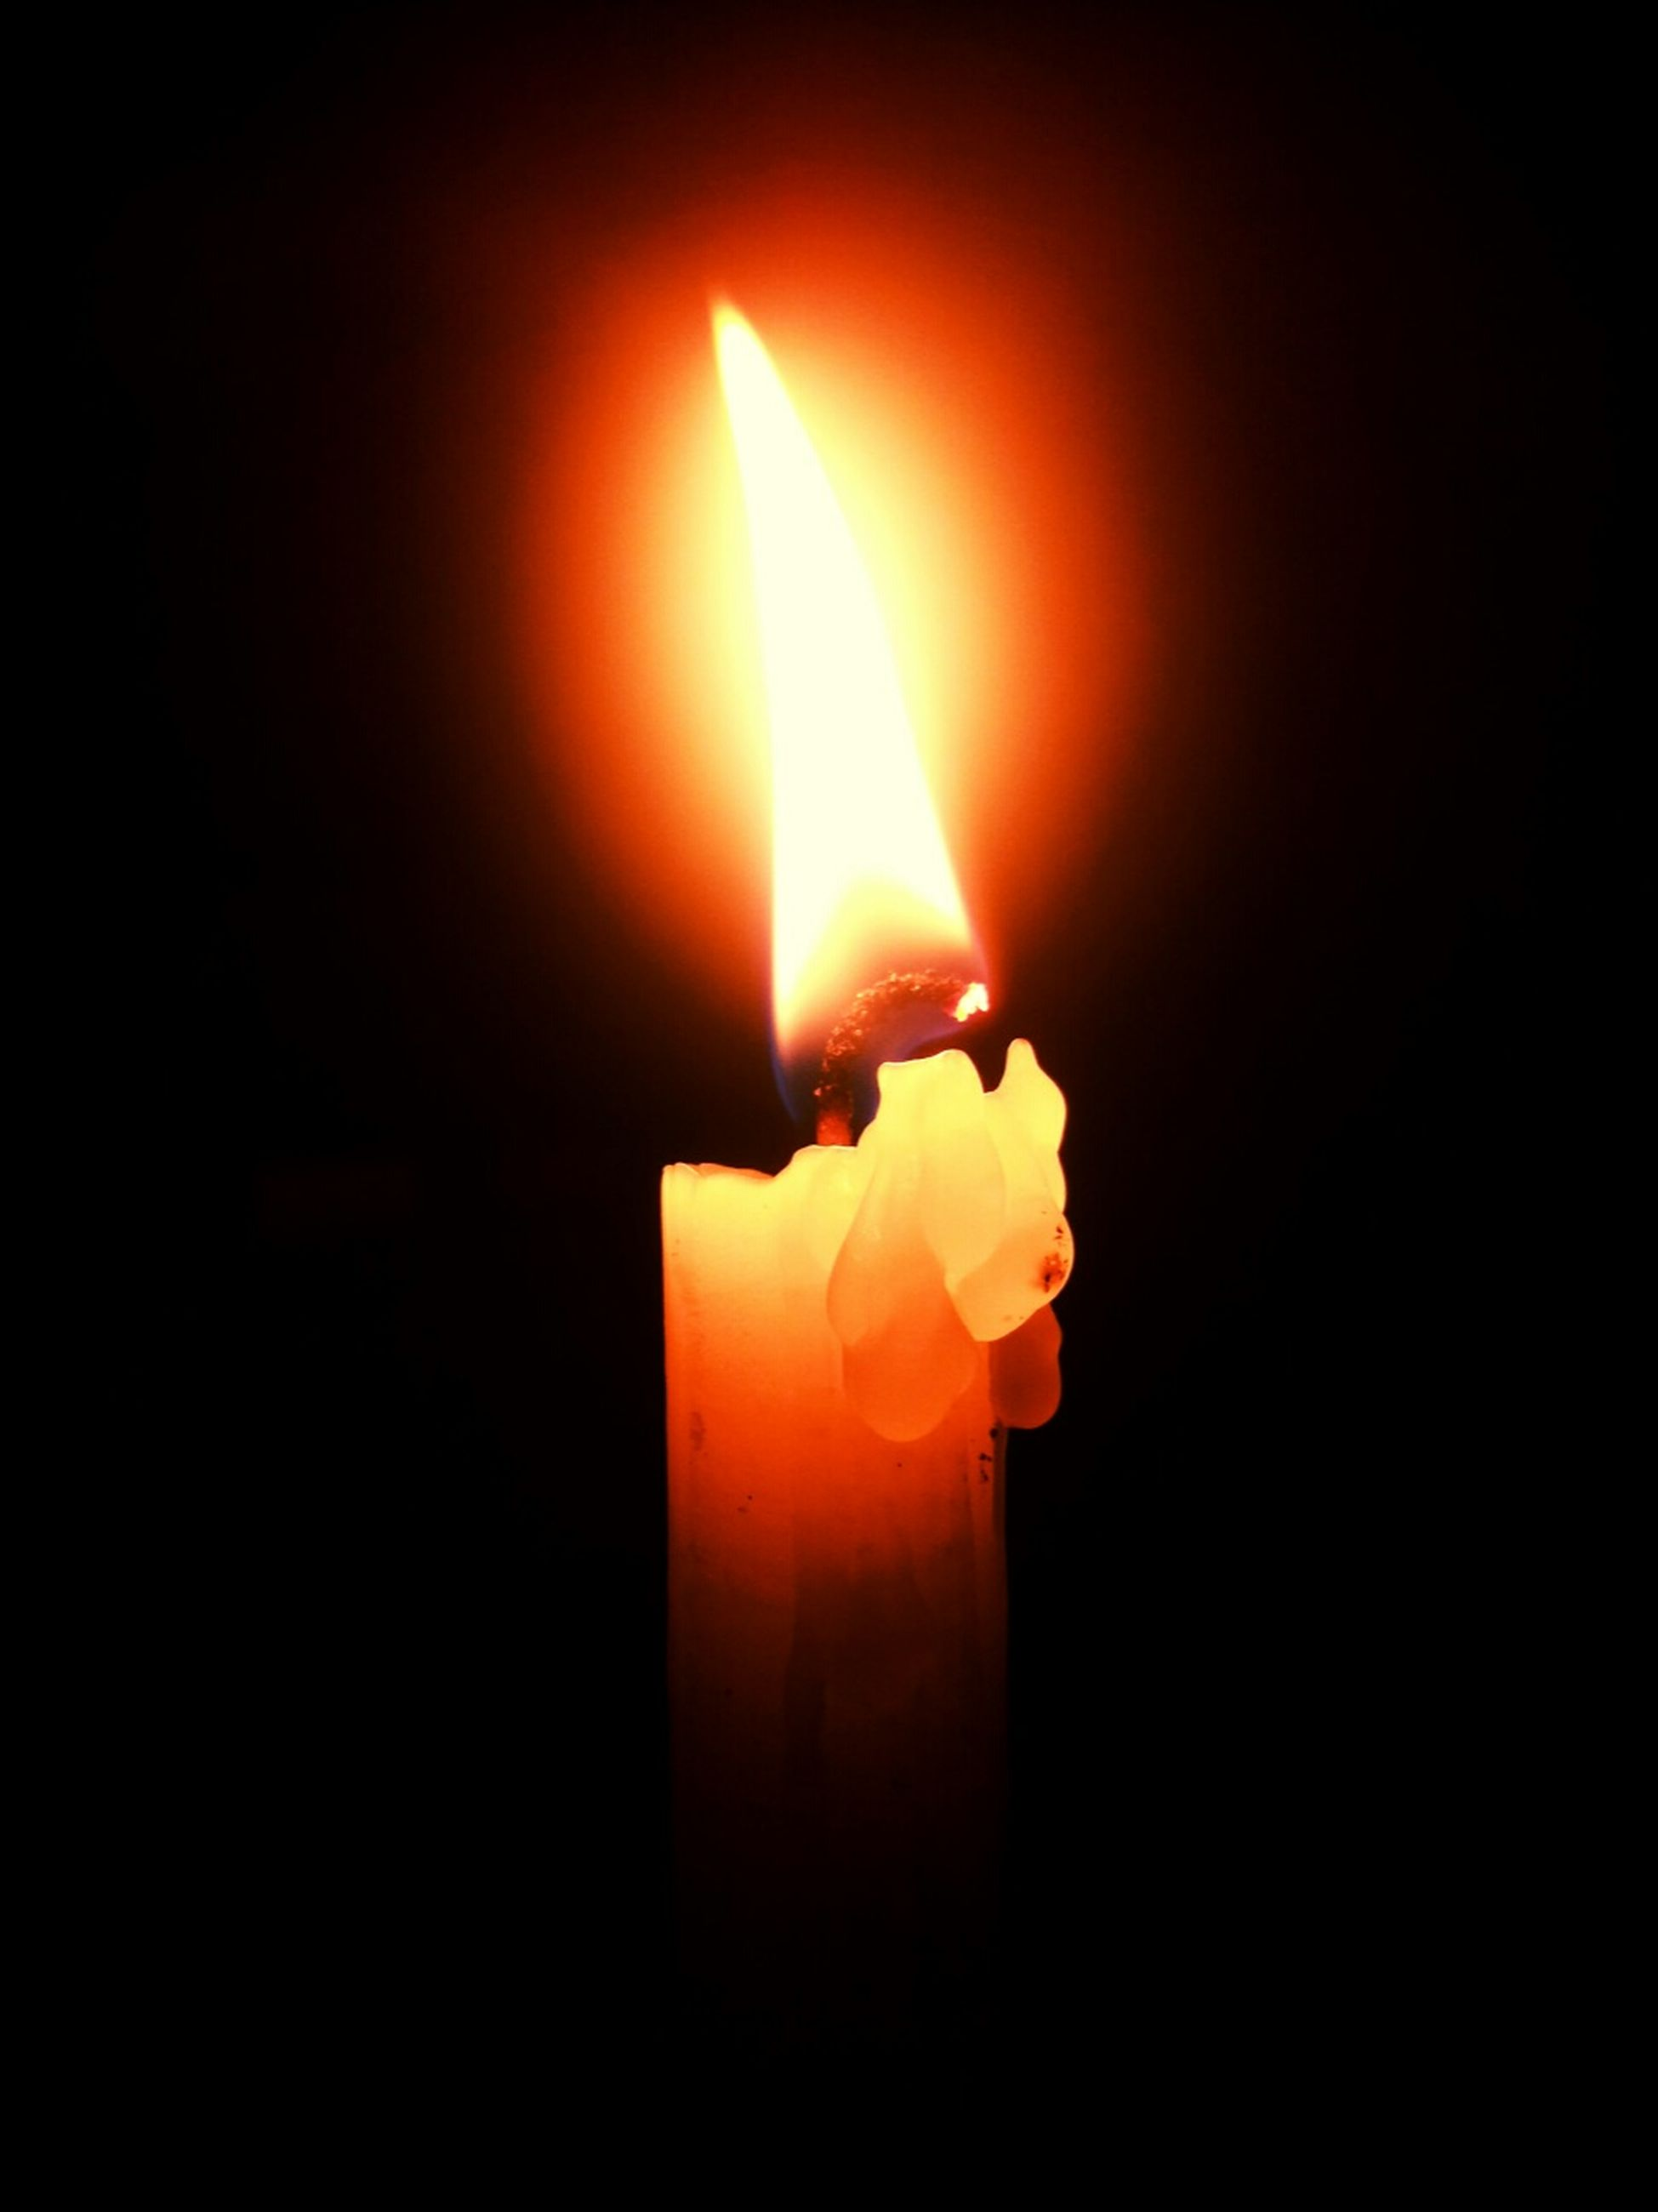 flame, burning, fire - natural phenomenon, heat - temperature, candle, glowing, lit, fire, close-up, indoors, candlelight, dark, illuminated, copy space, orange color, black background, darkroom, studio shot, light - natural phenomenon, heat